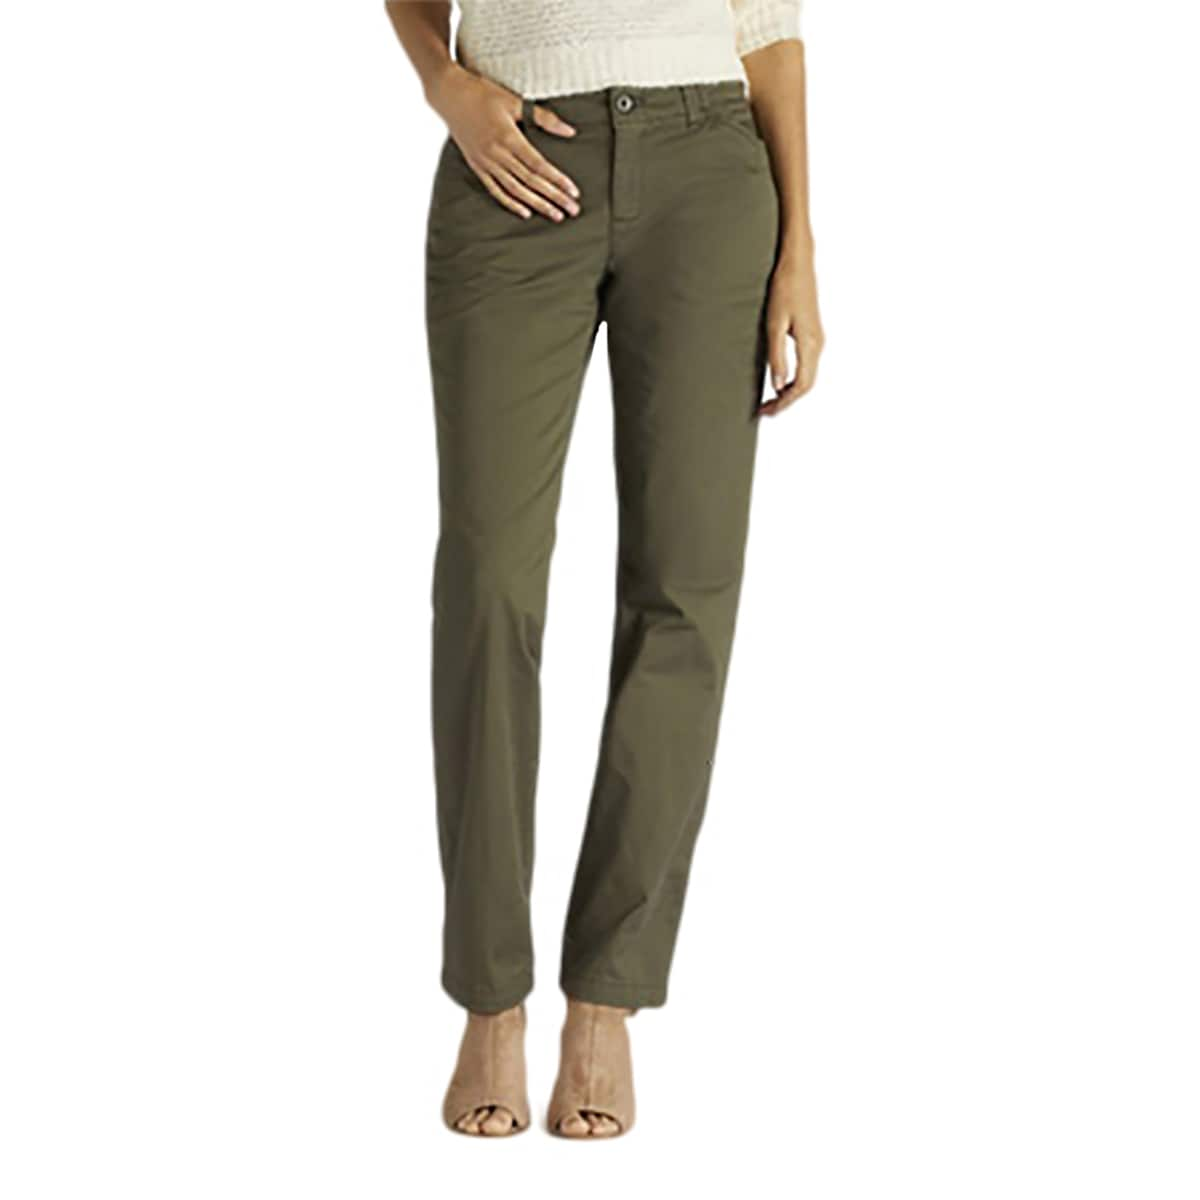 Lee Womens Midrise Fit Essential Chino Pant